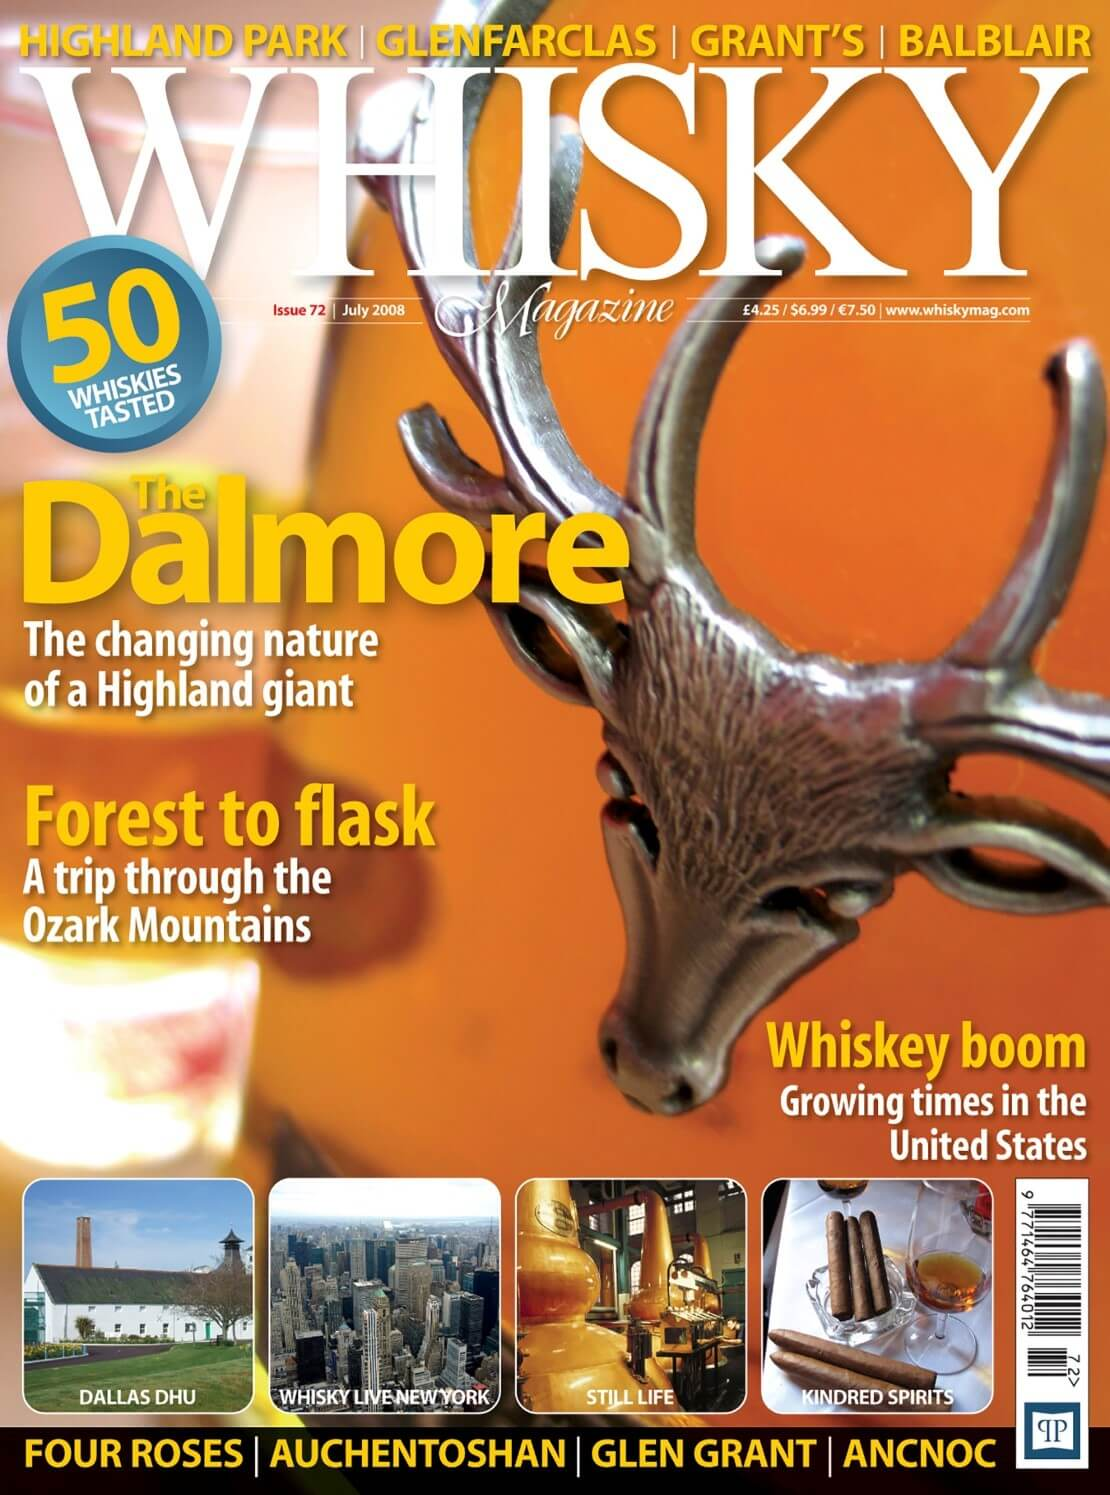 The Dalmore Forest to Flask The Whisky Boom